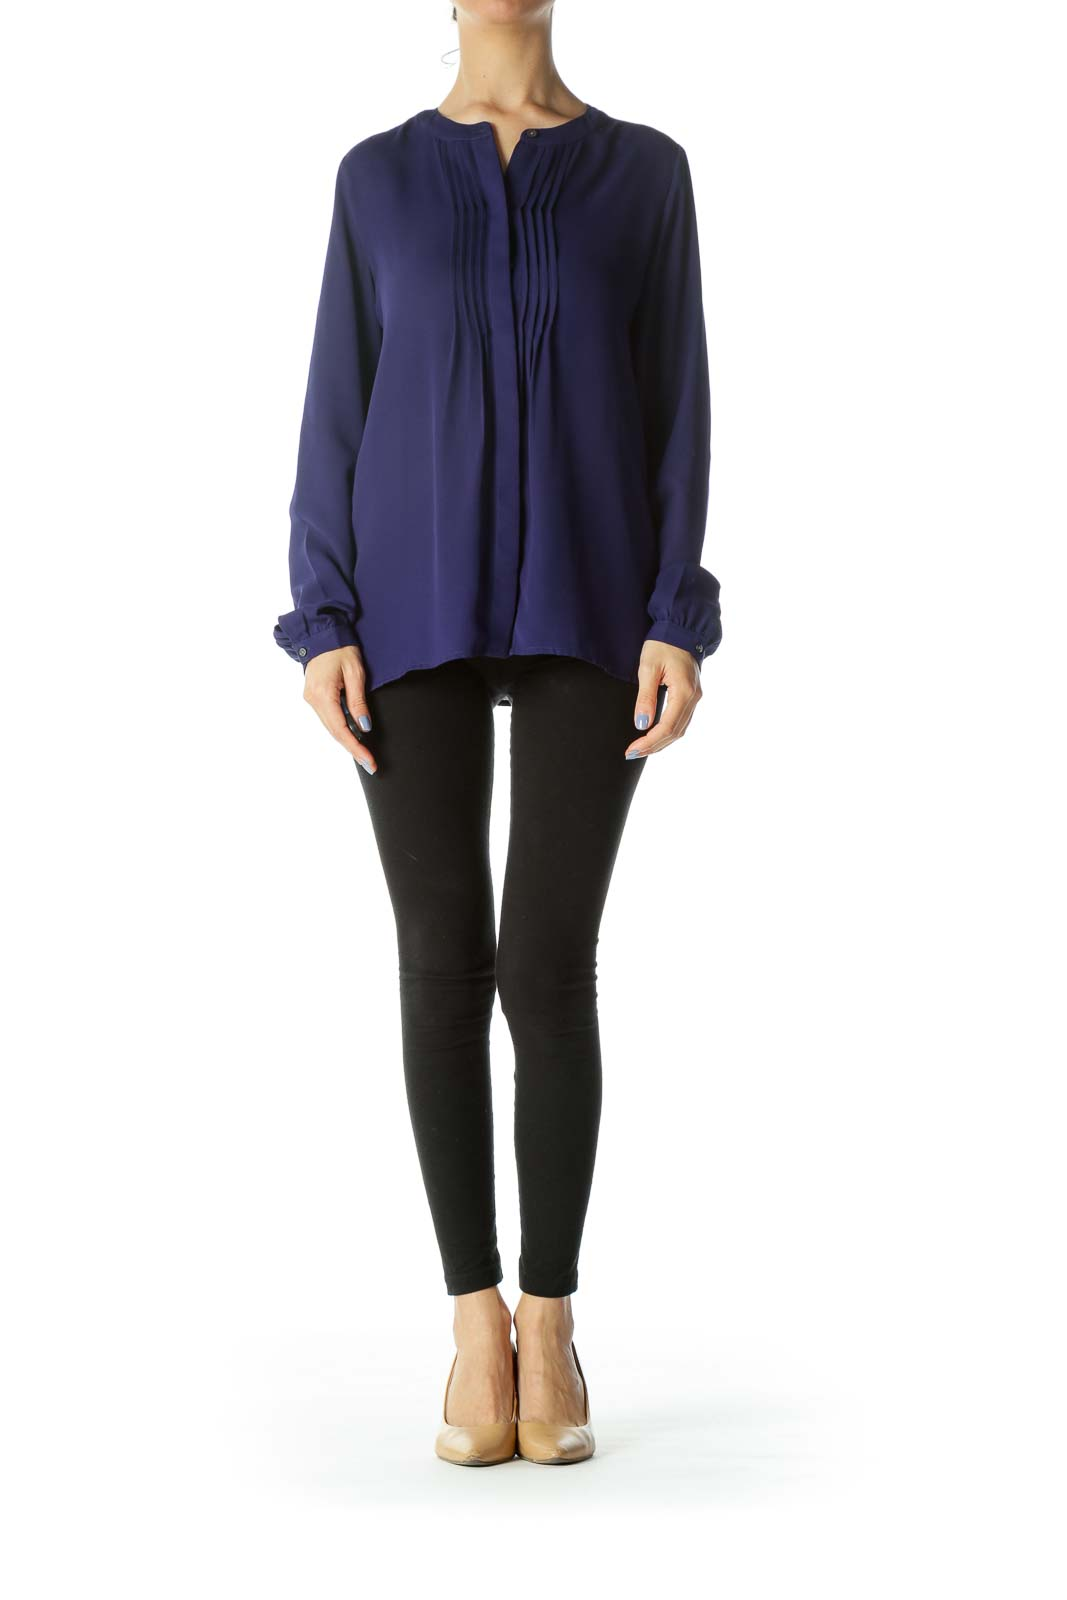 Blue Pleated Accent Long-Sleeve Round-Neck Blouse